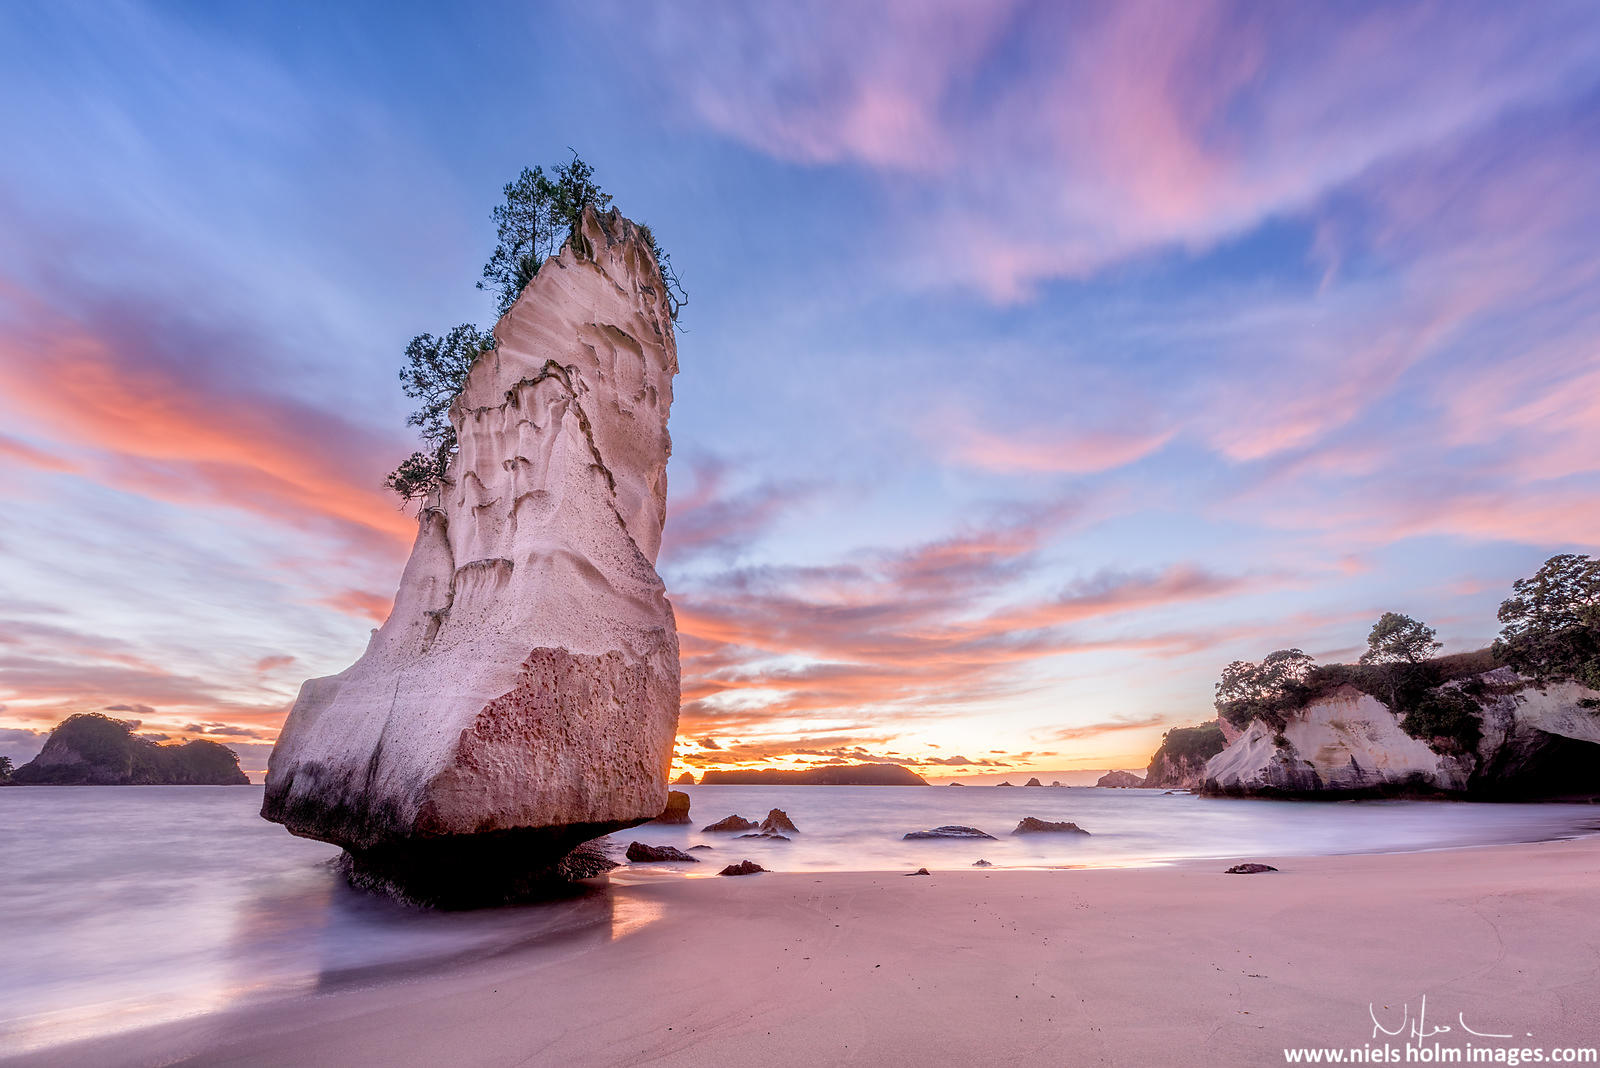 Cathedral Cove, Coromandel Peninsula – New Zealand